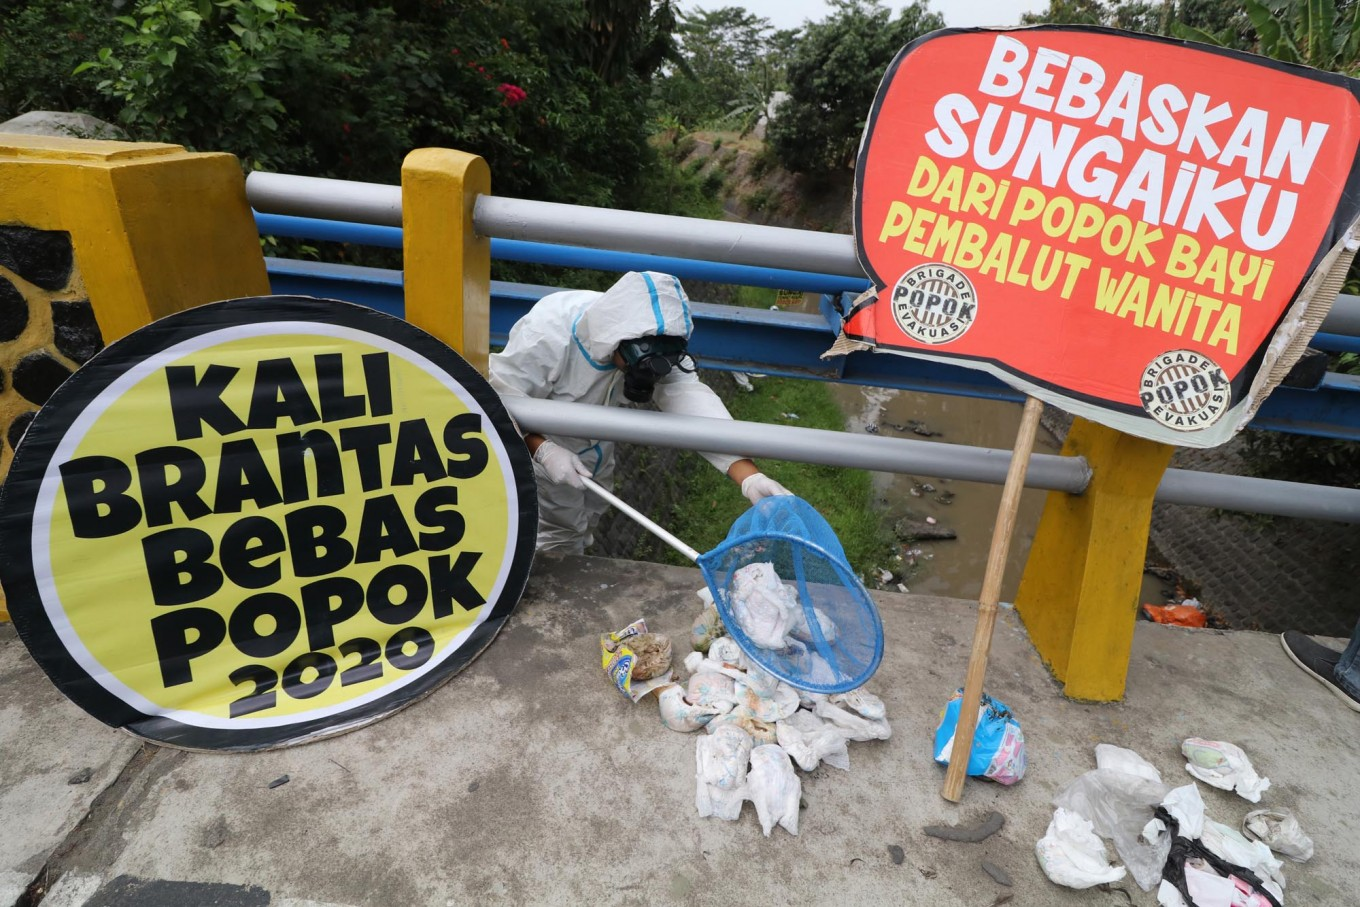 Developed countries urged to pick up Brantas River trash